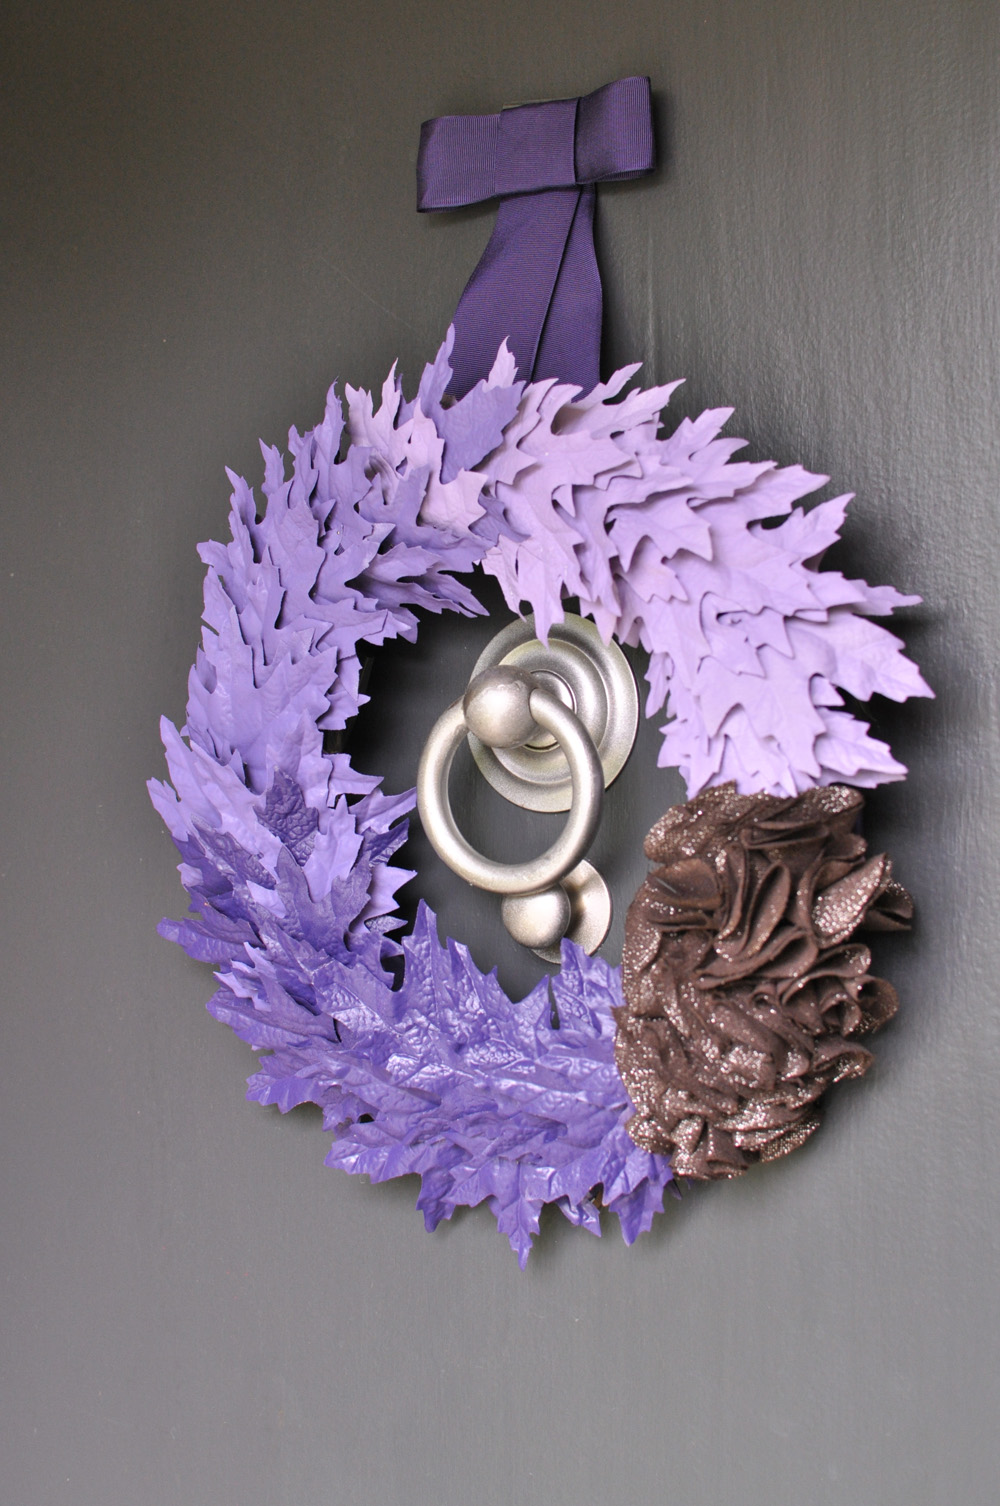 26 most beautiful diy holiday wreaths ever diy joy - Awesome christmas wreath with homemade style ...